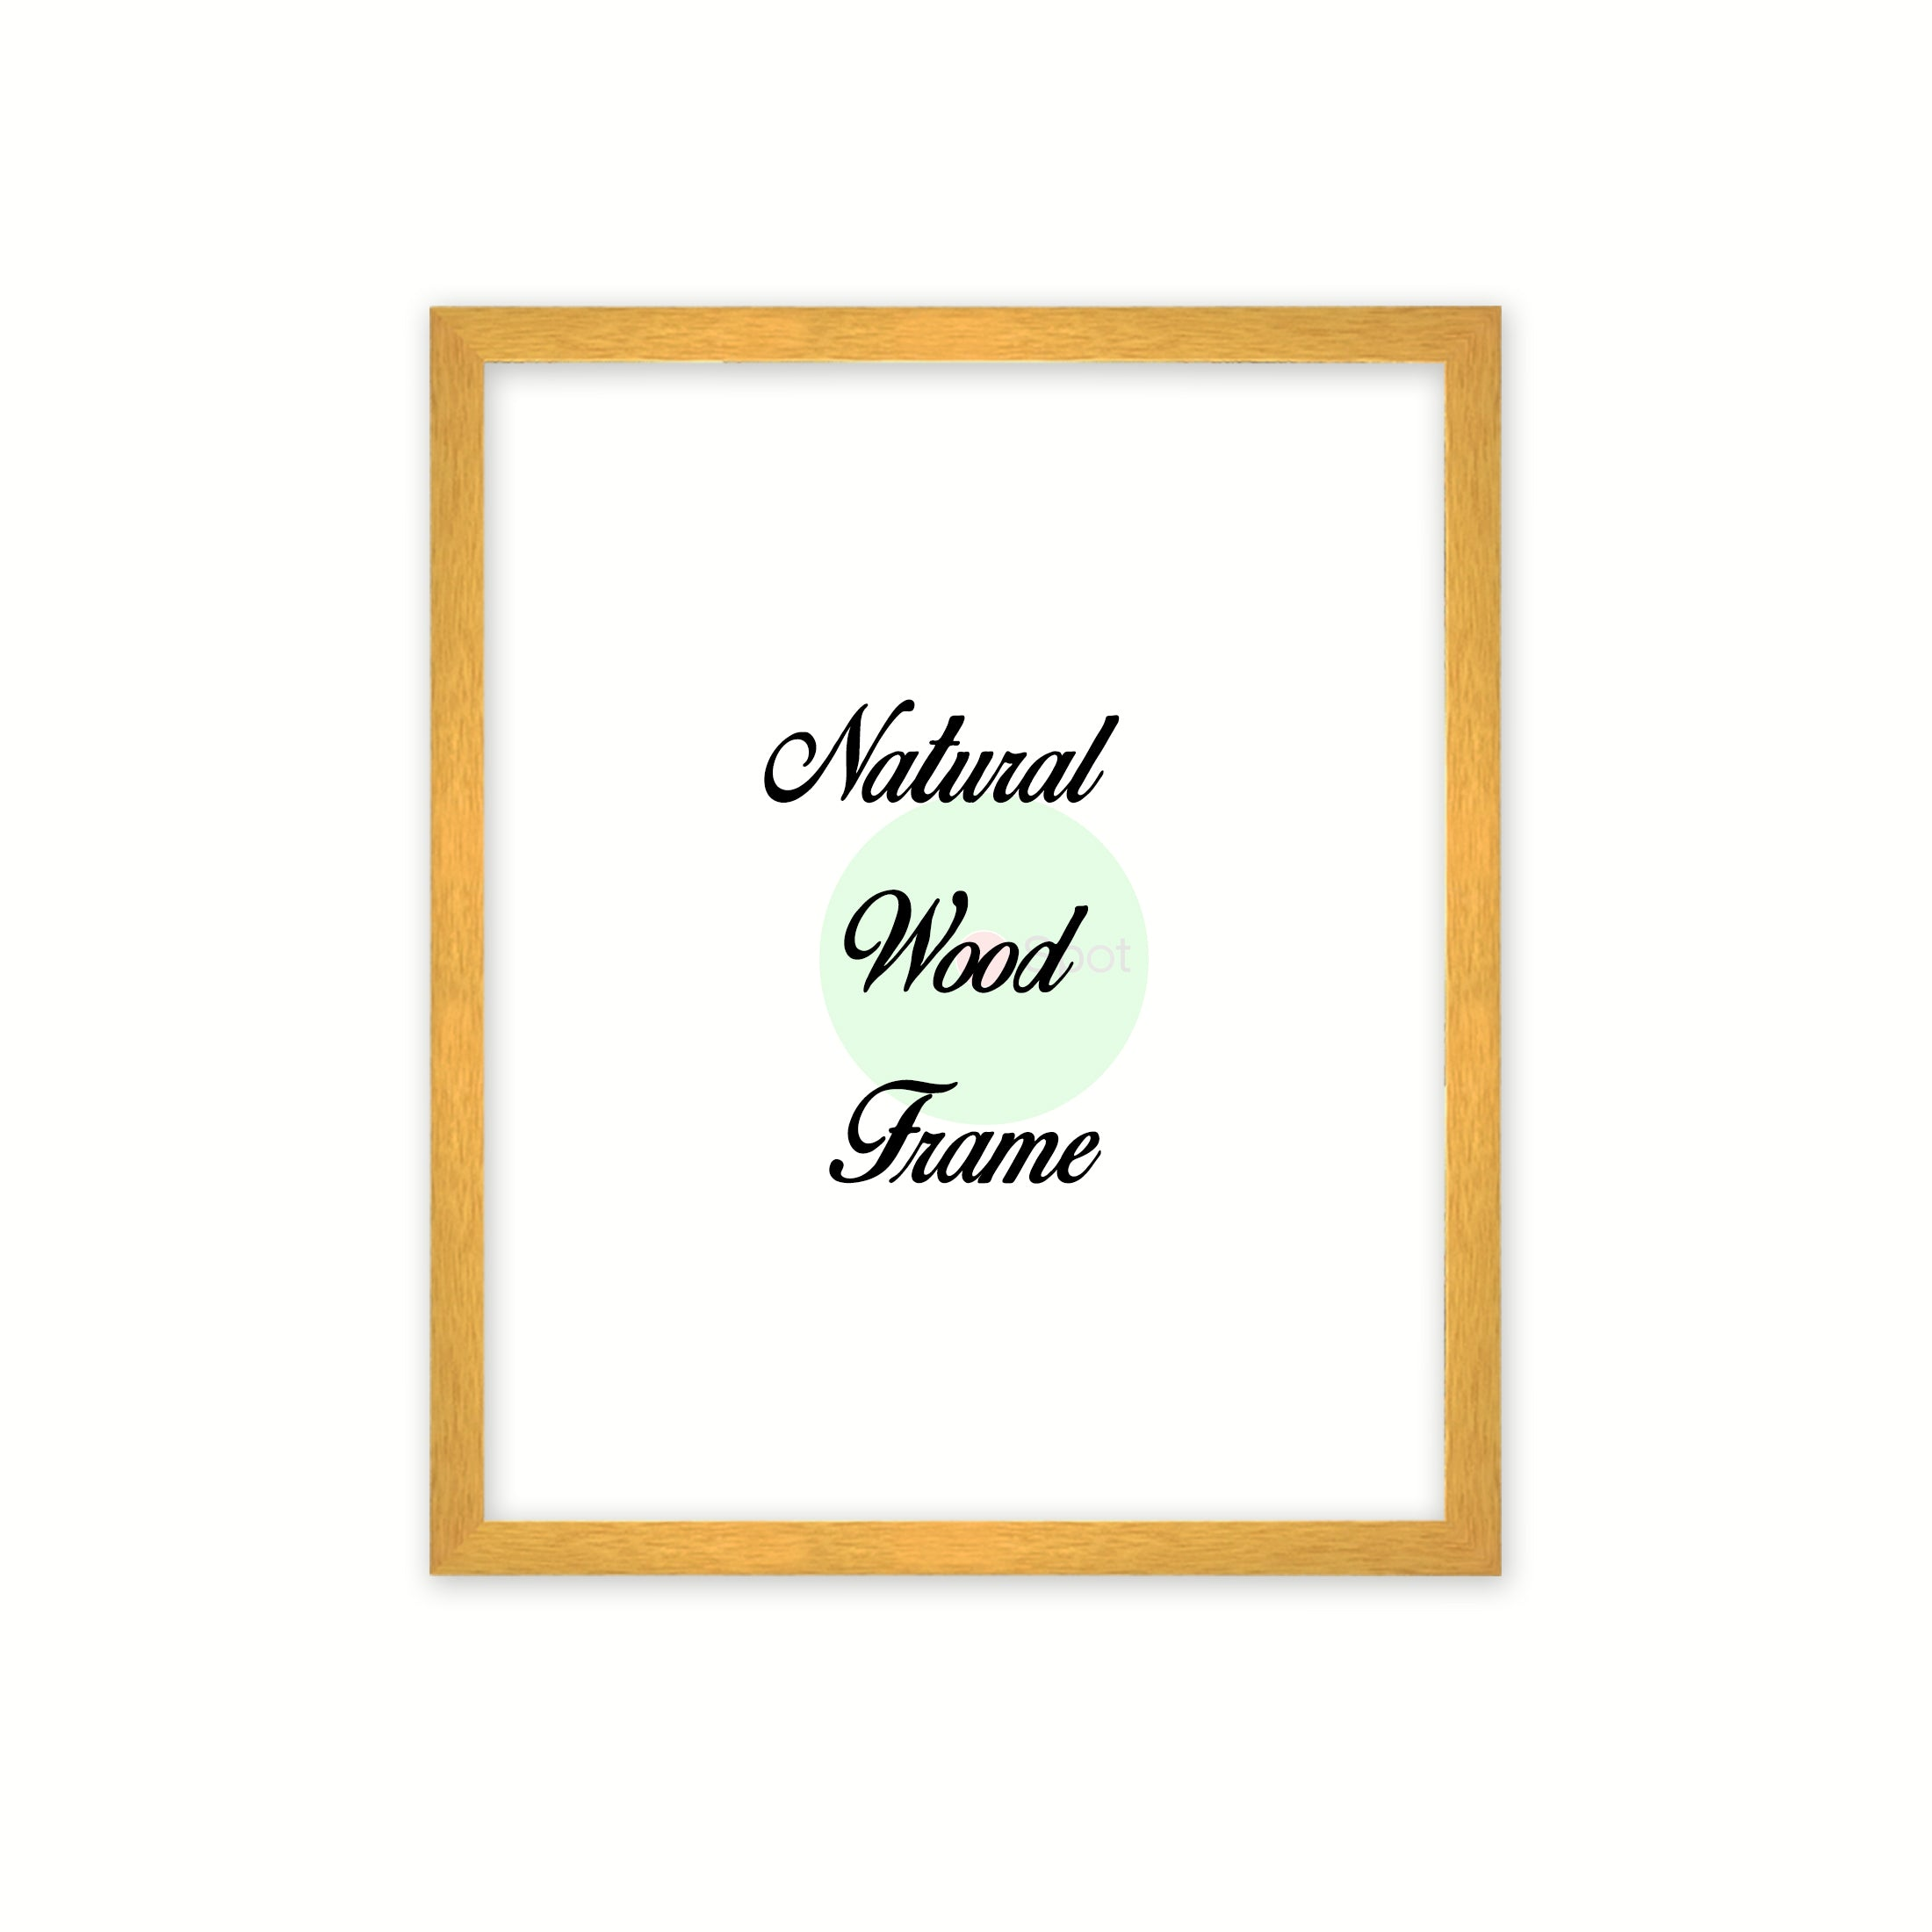 Natural Wood Frame Signature Frames Perfect Modern Comtemporary Photo Art Gallery Poster Photograph Home Decor